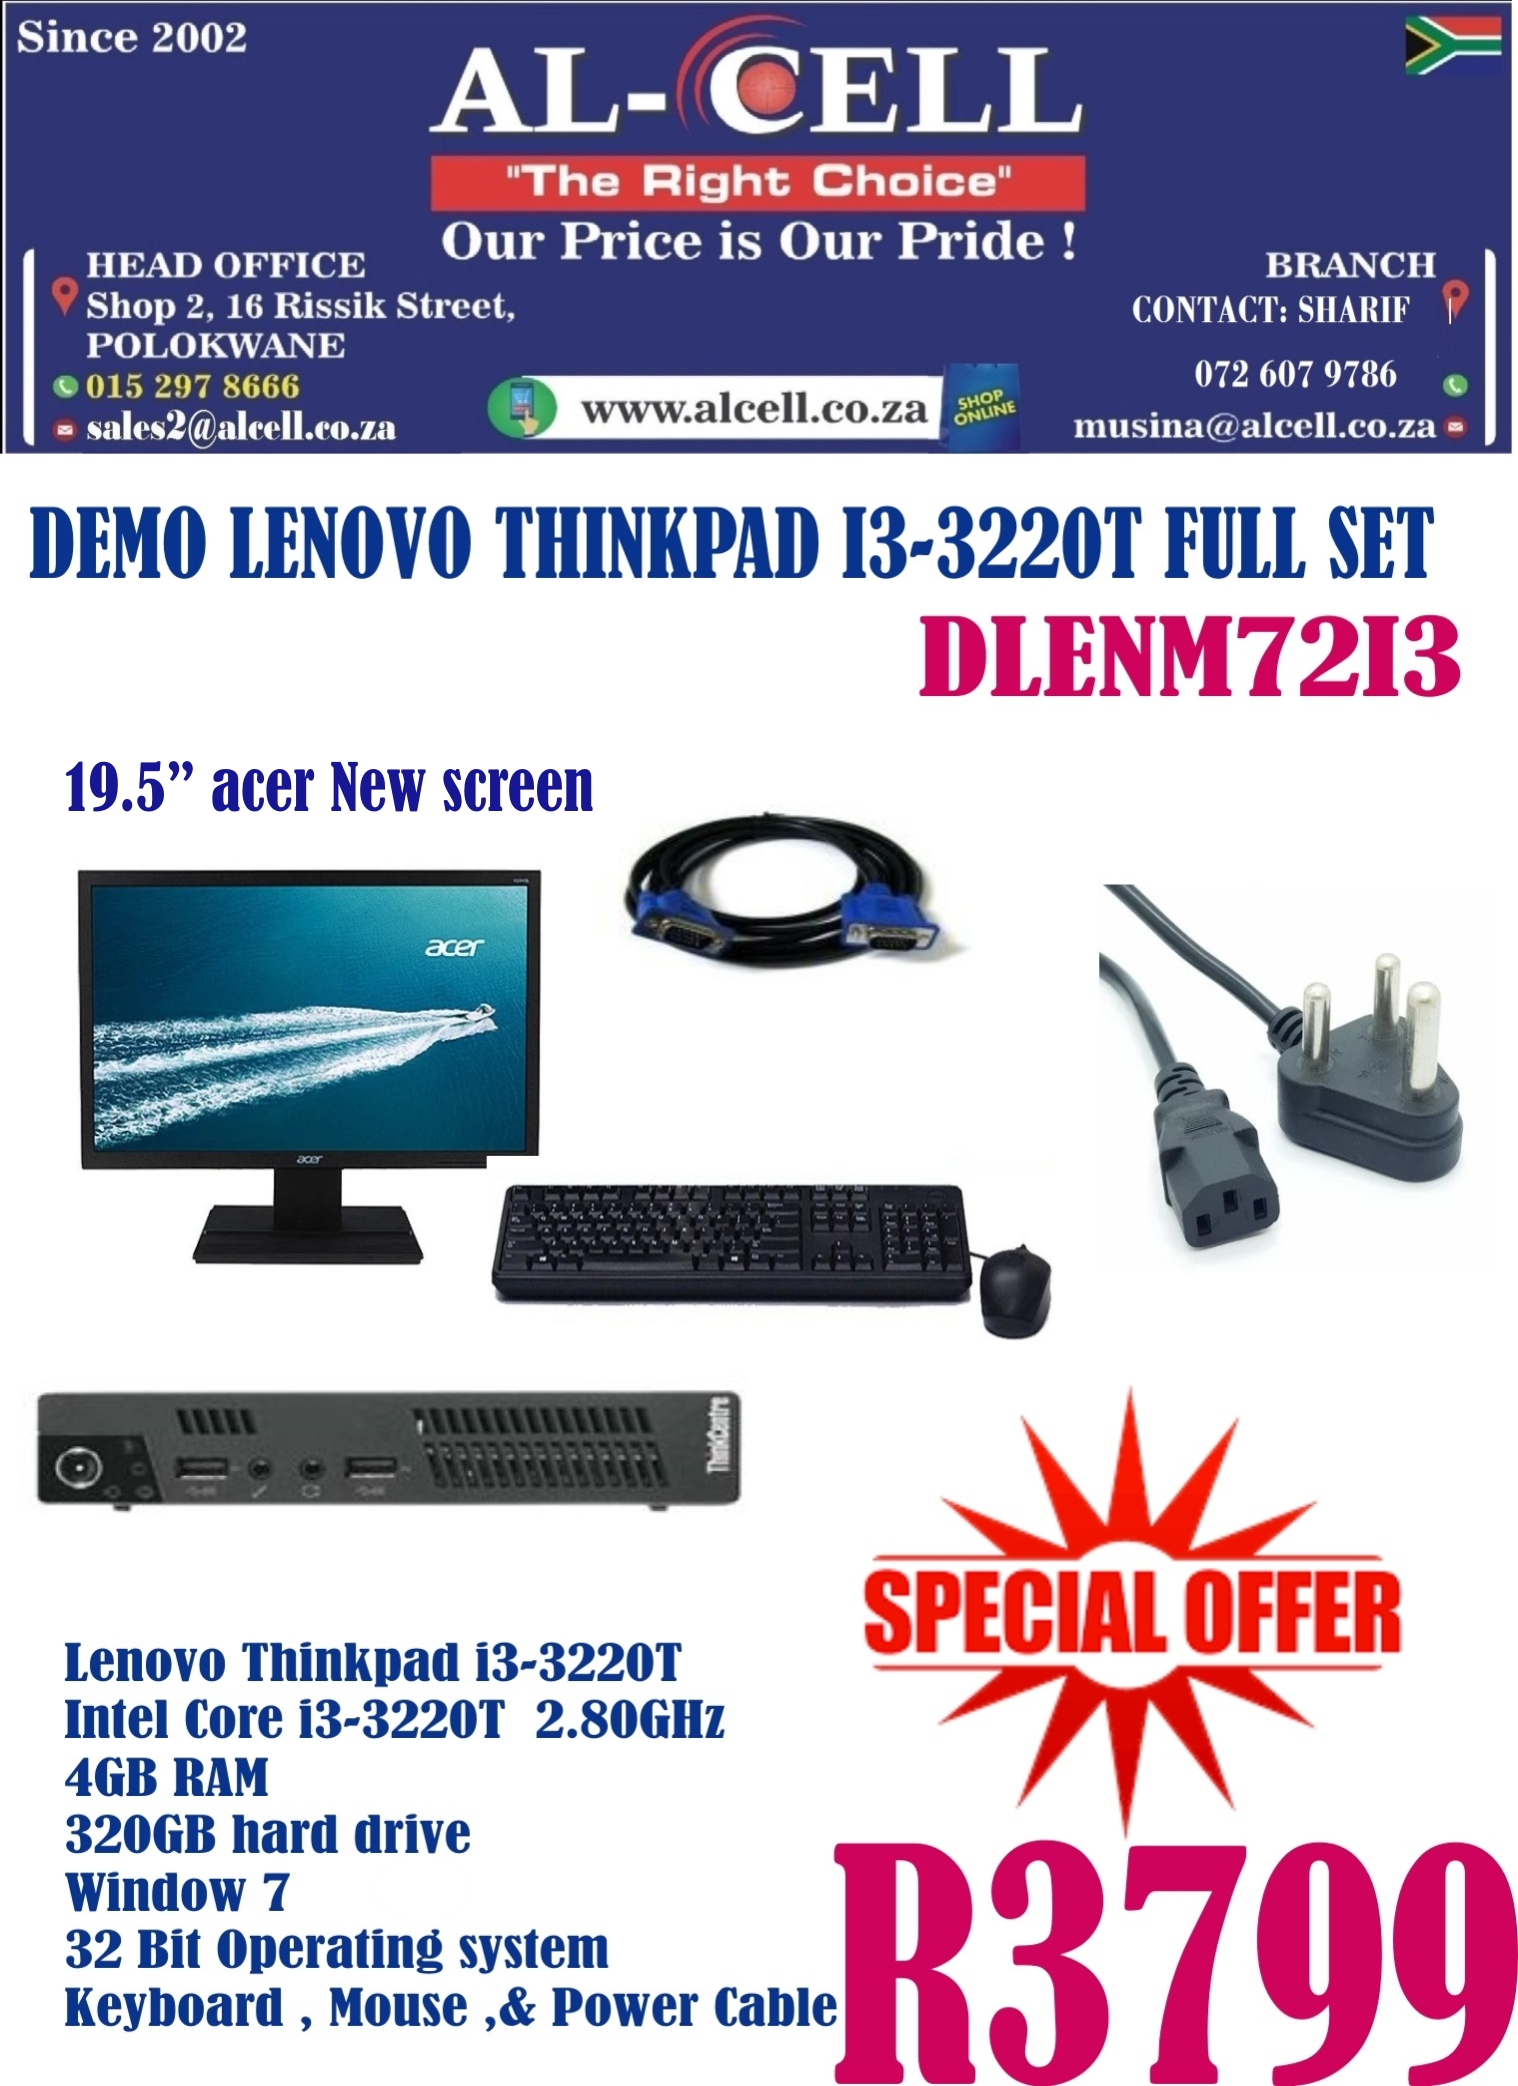 Pre-Used Lenovo Thinkpad I3 - 3220T Full Set